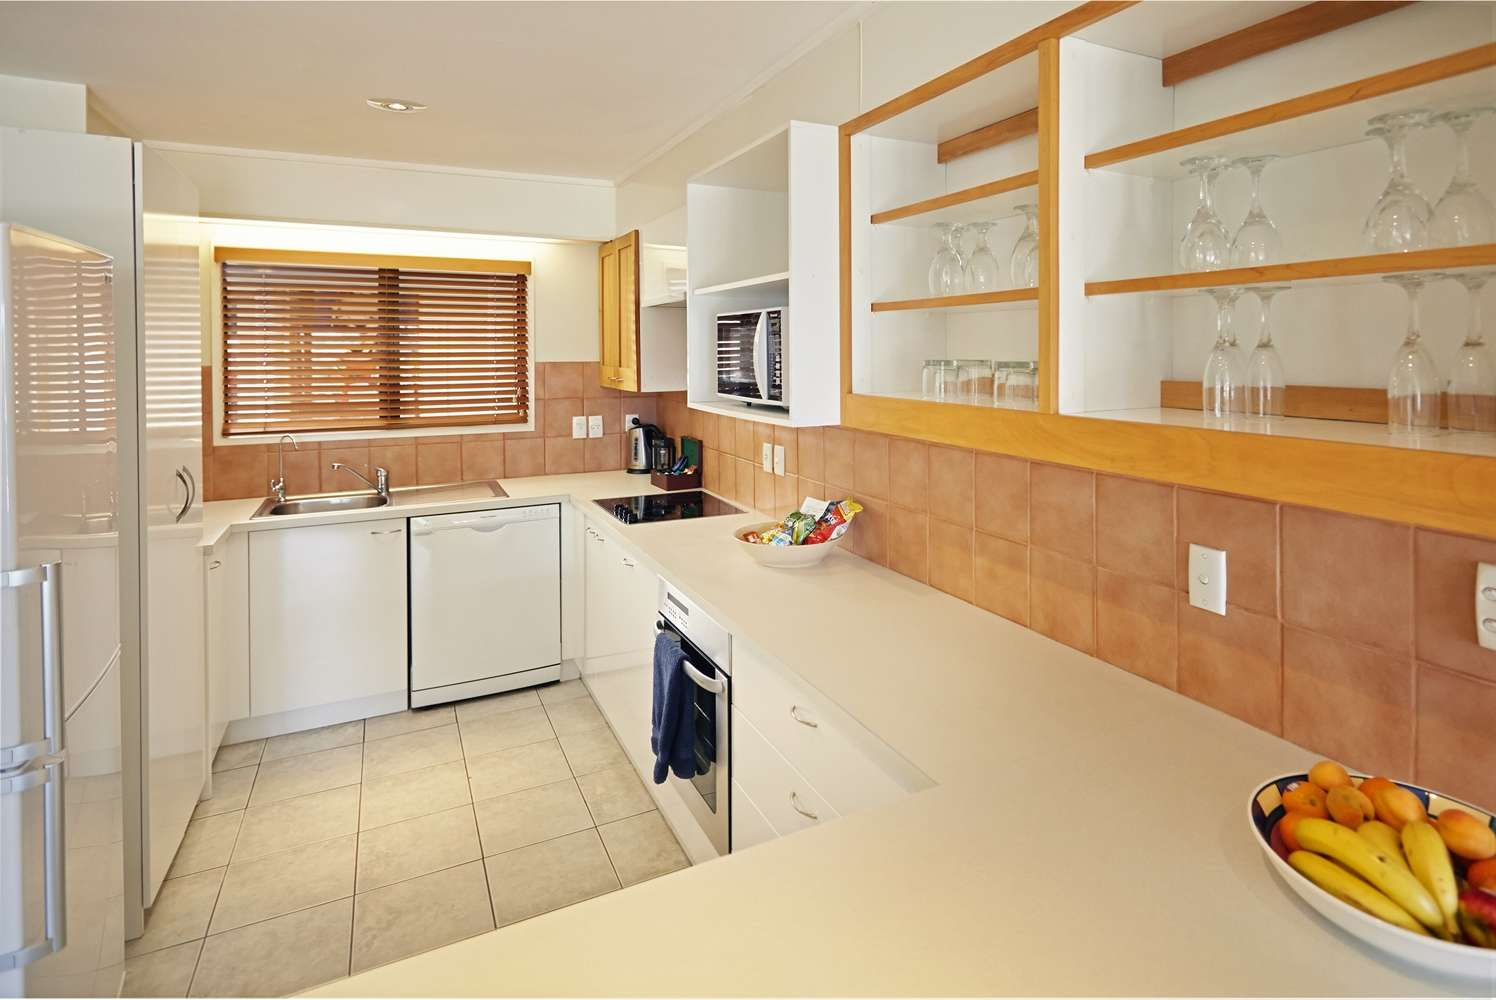 pioneer-apartments-waterfront-garden-level-self-catered-kitchen.jpg